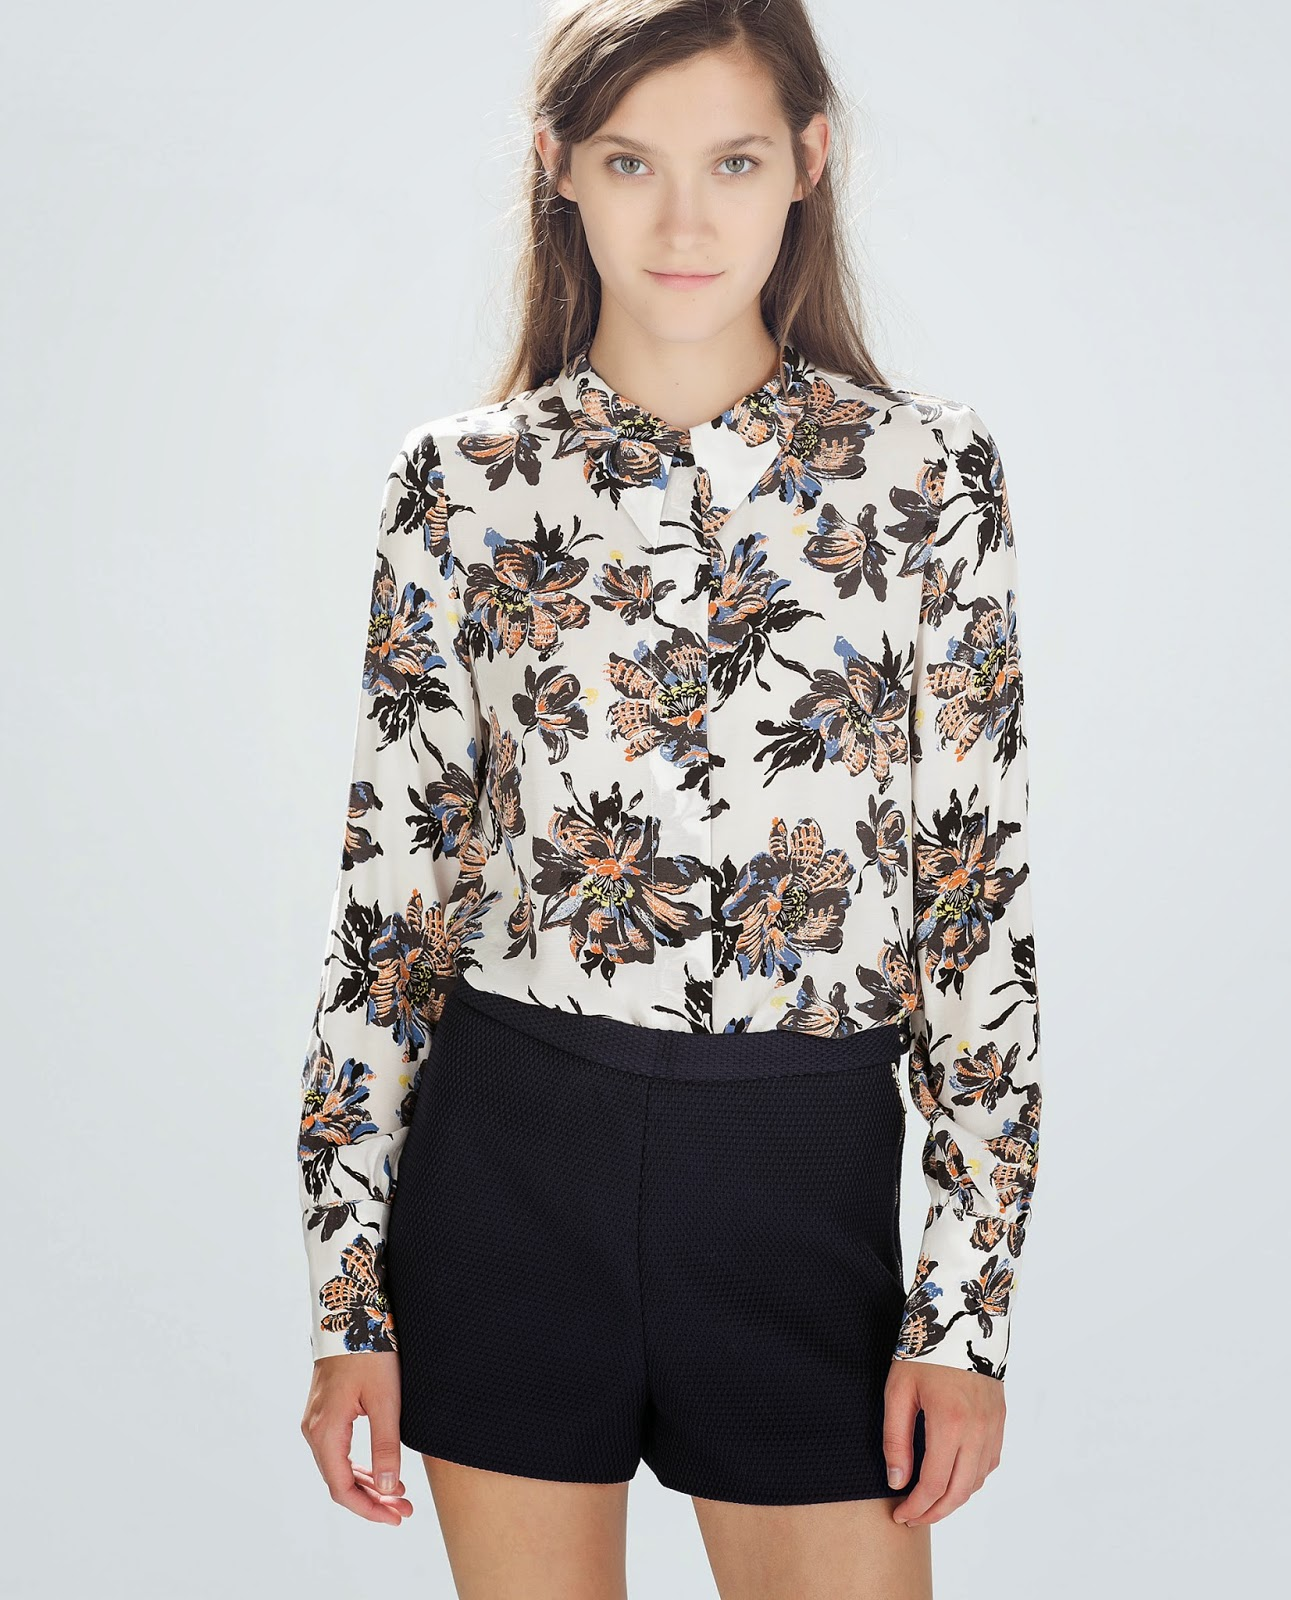 zara patterned blouse